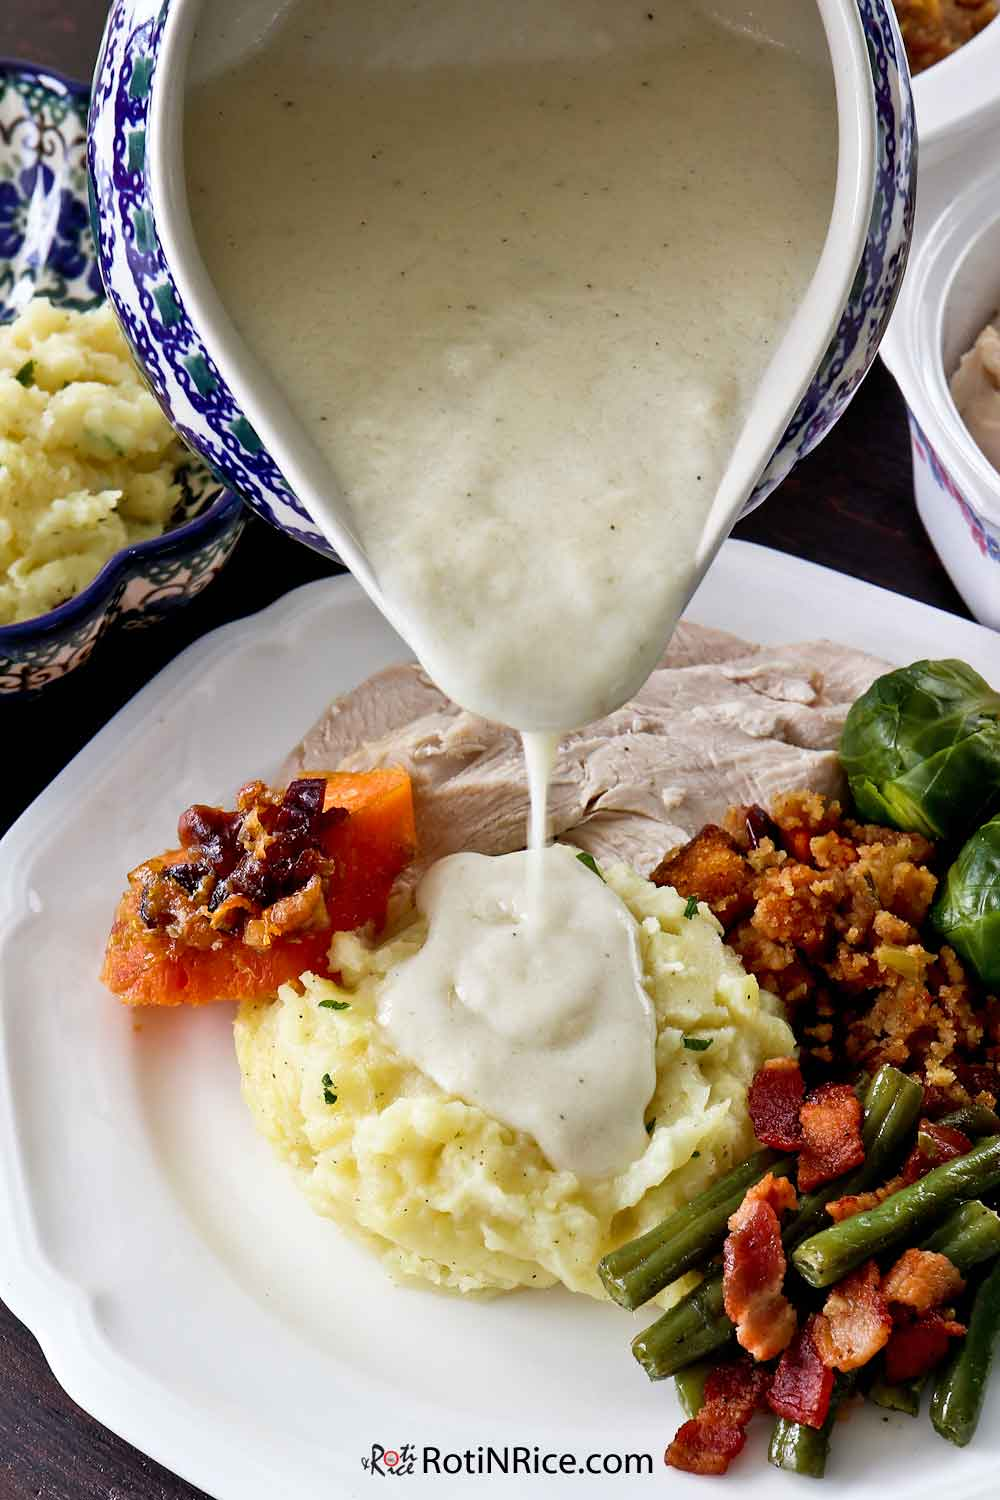 Creamy Turkey Gravy perfect with Creamy Mashed Potatoes.